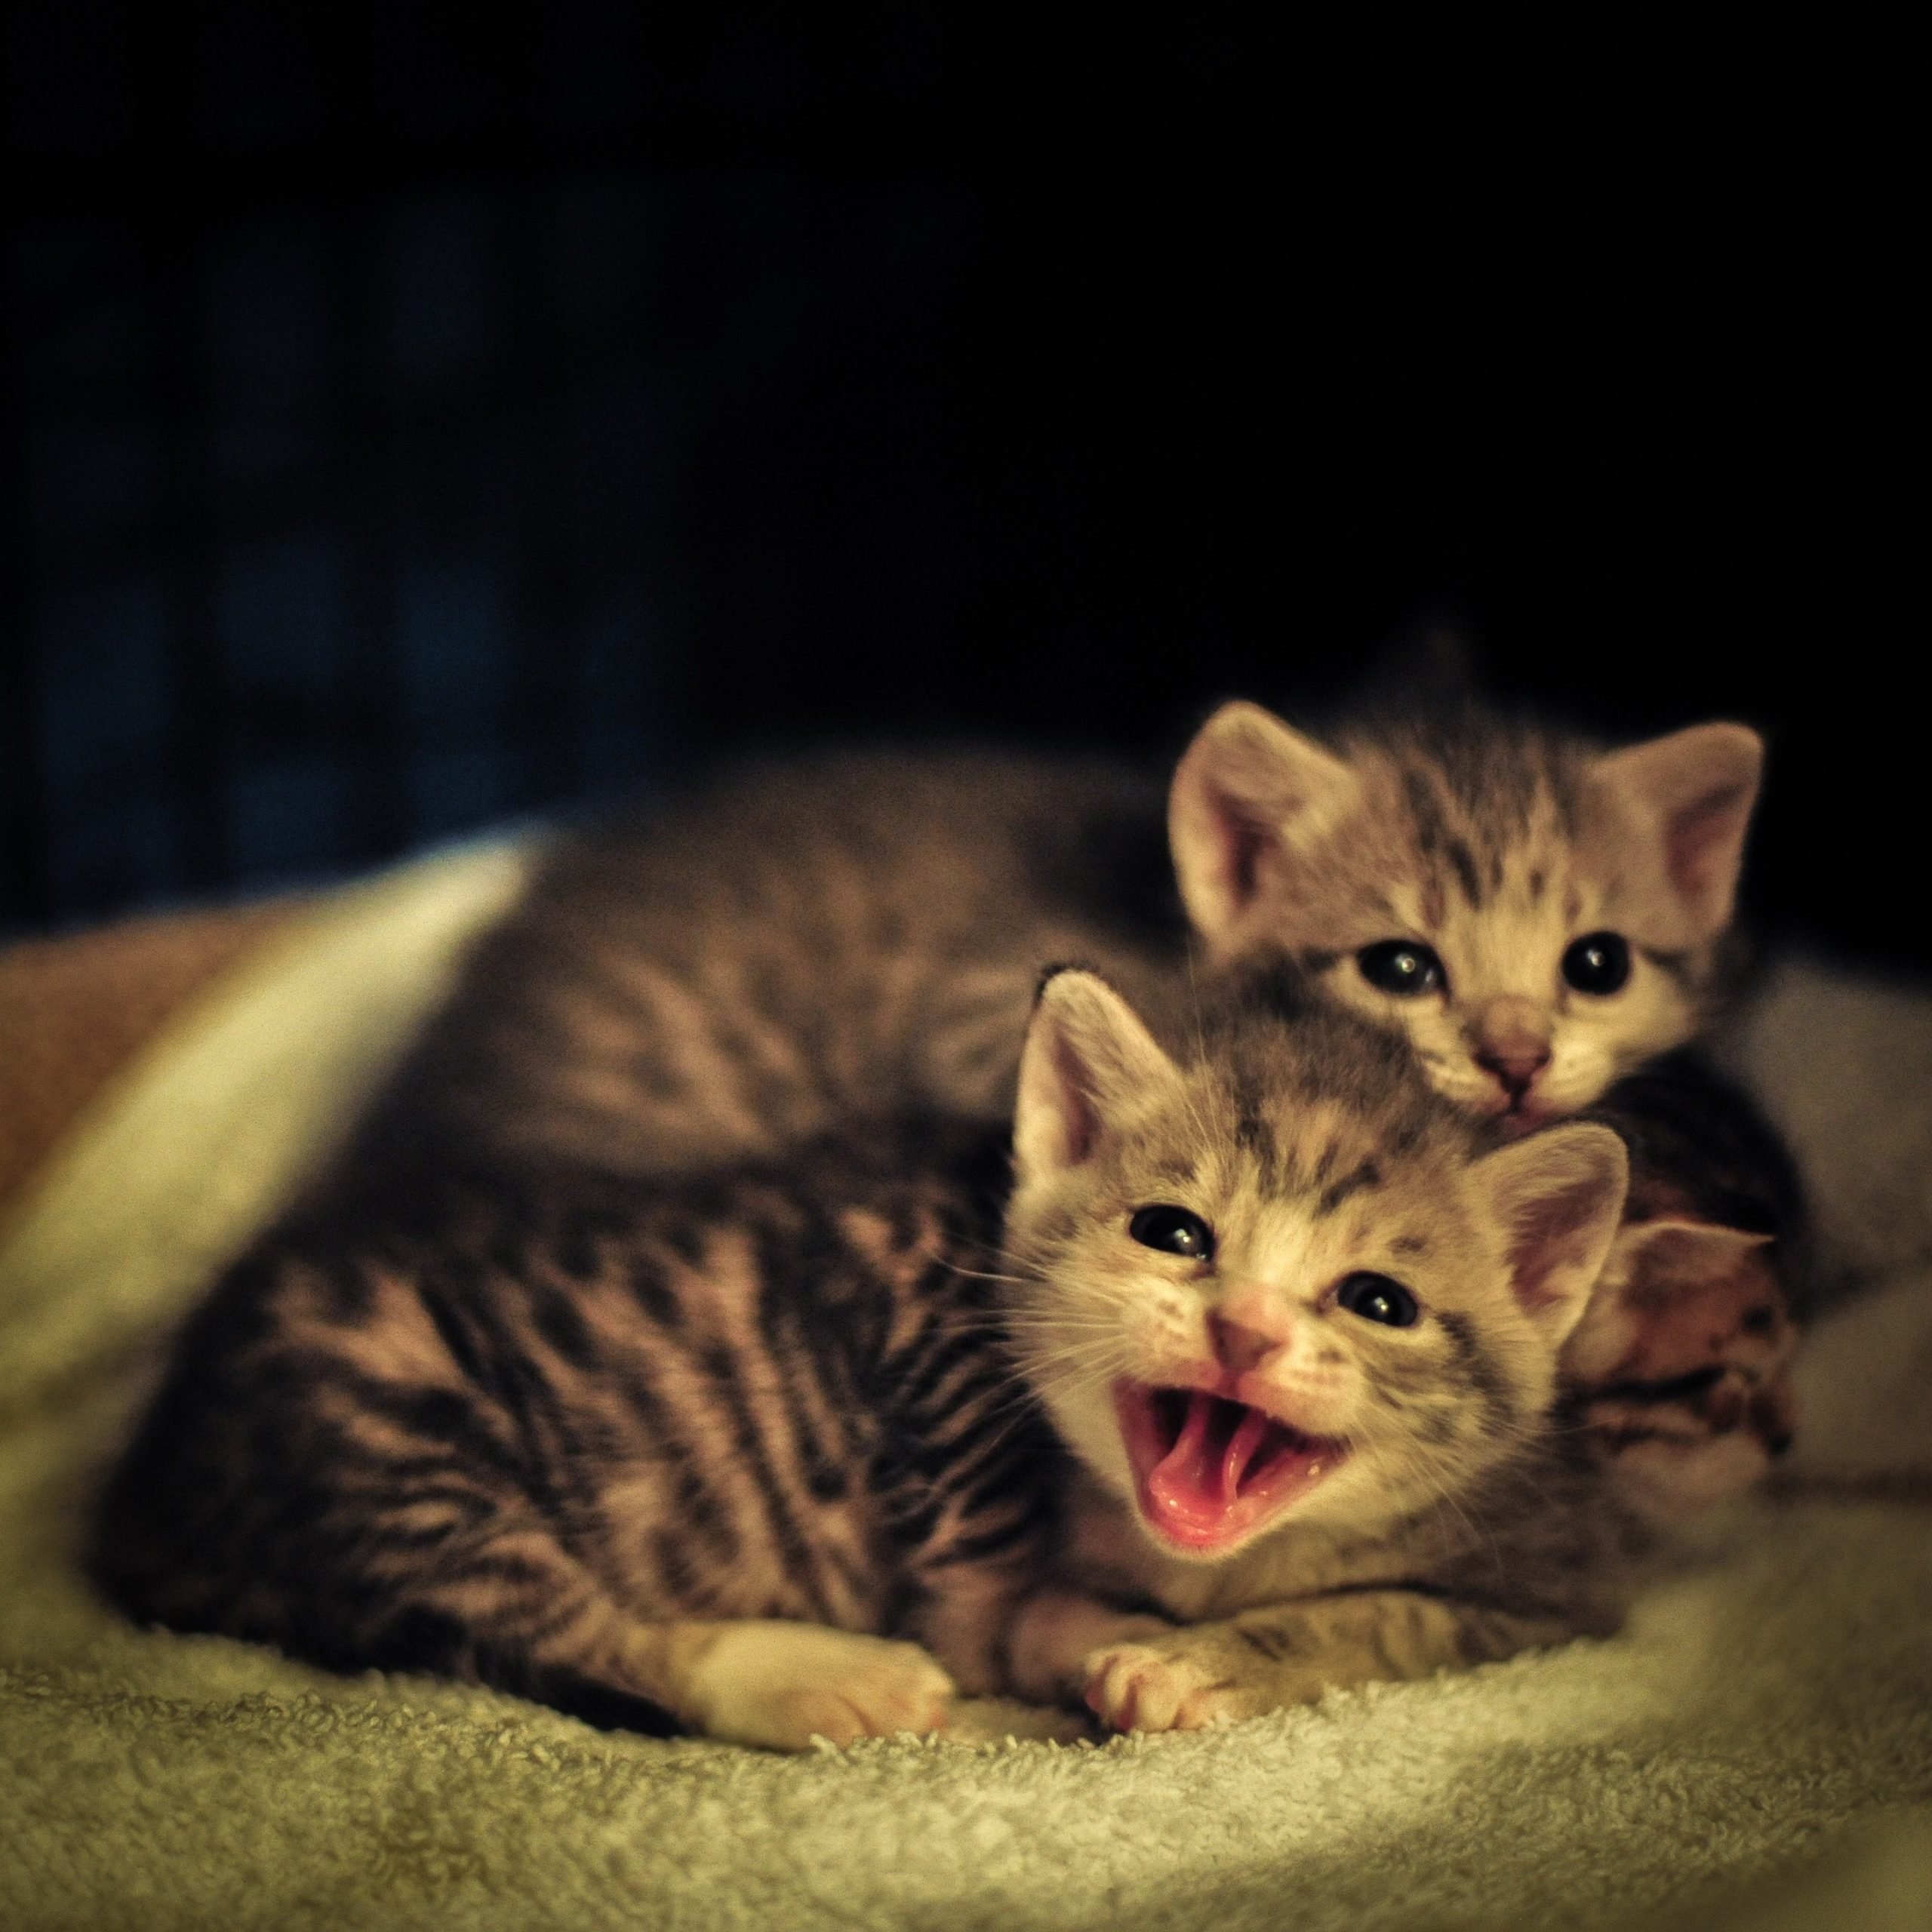 Kitten tanpa induk - Photo by Zetong Li on Unsplash